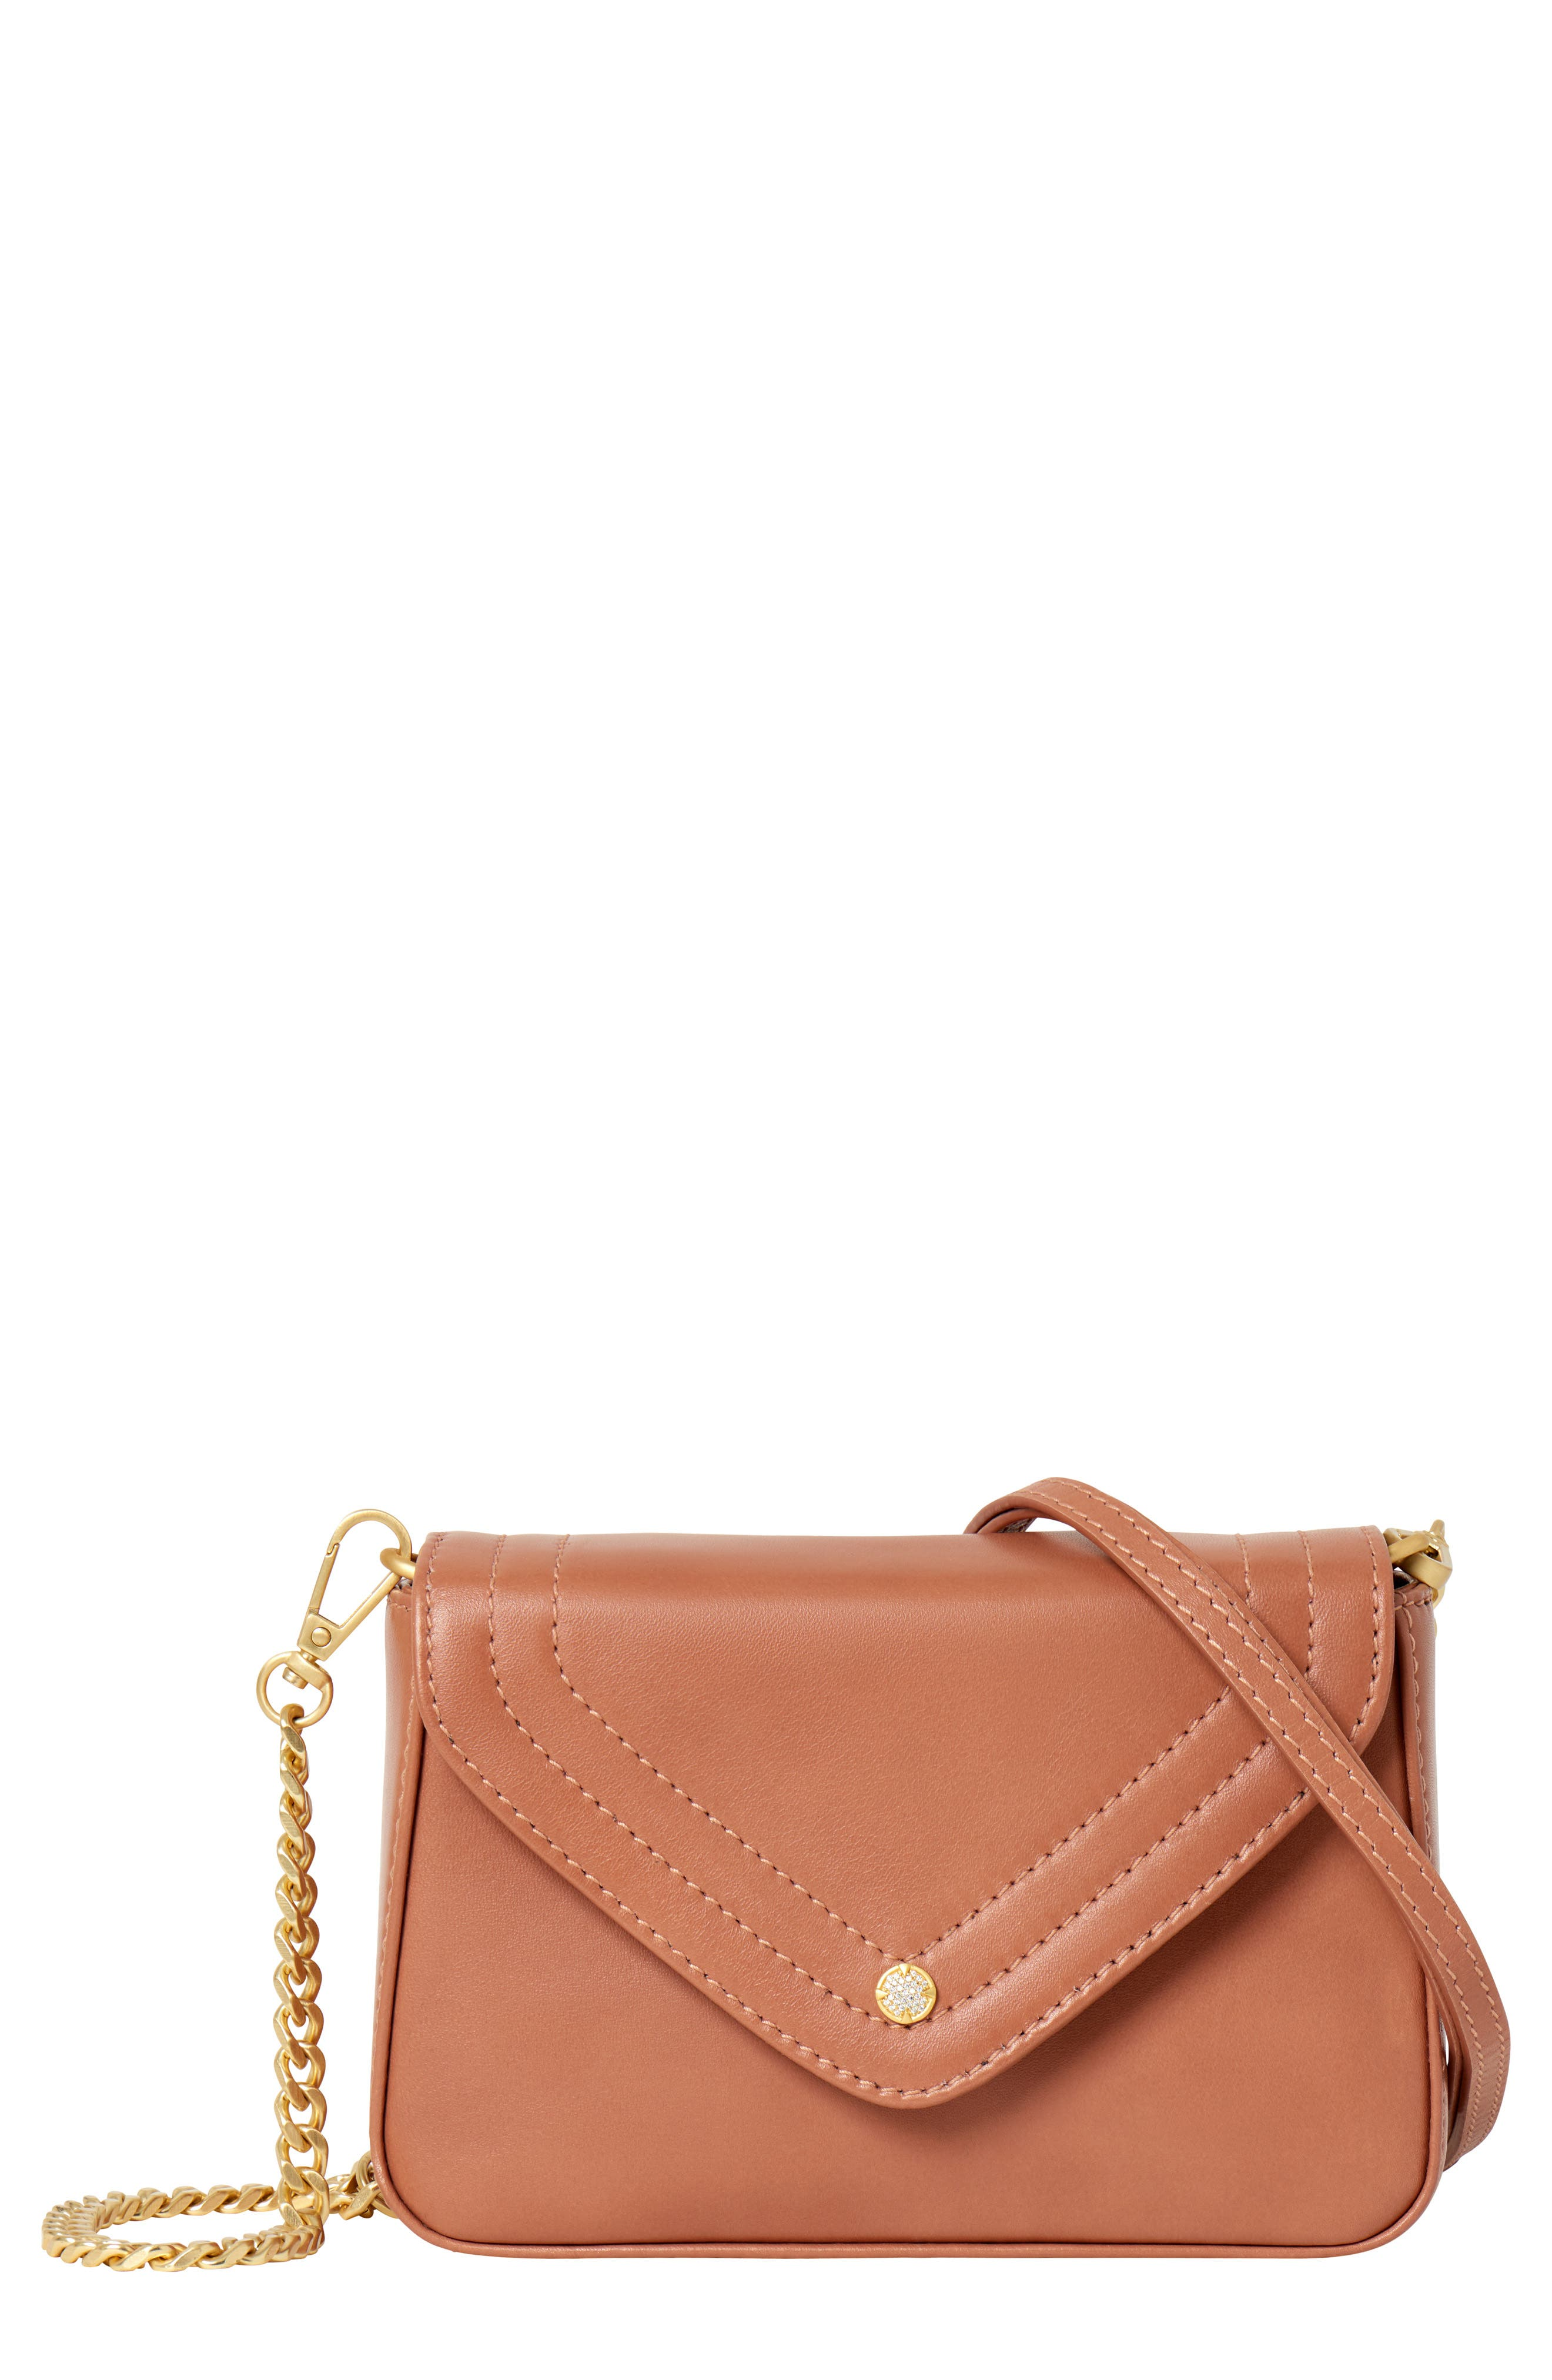 Maiden Leather Crossbody Bag,                         Main,                         color, ROSE